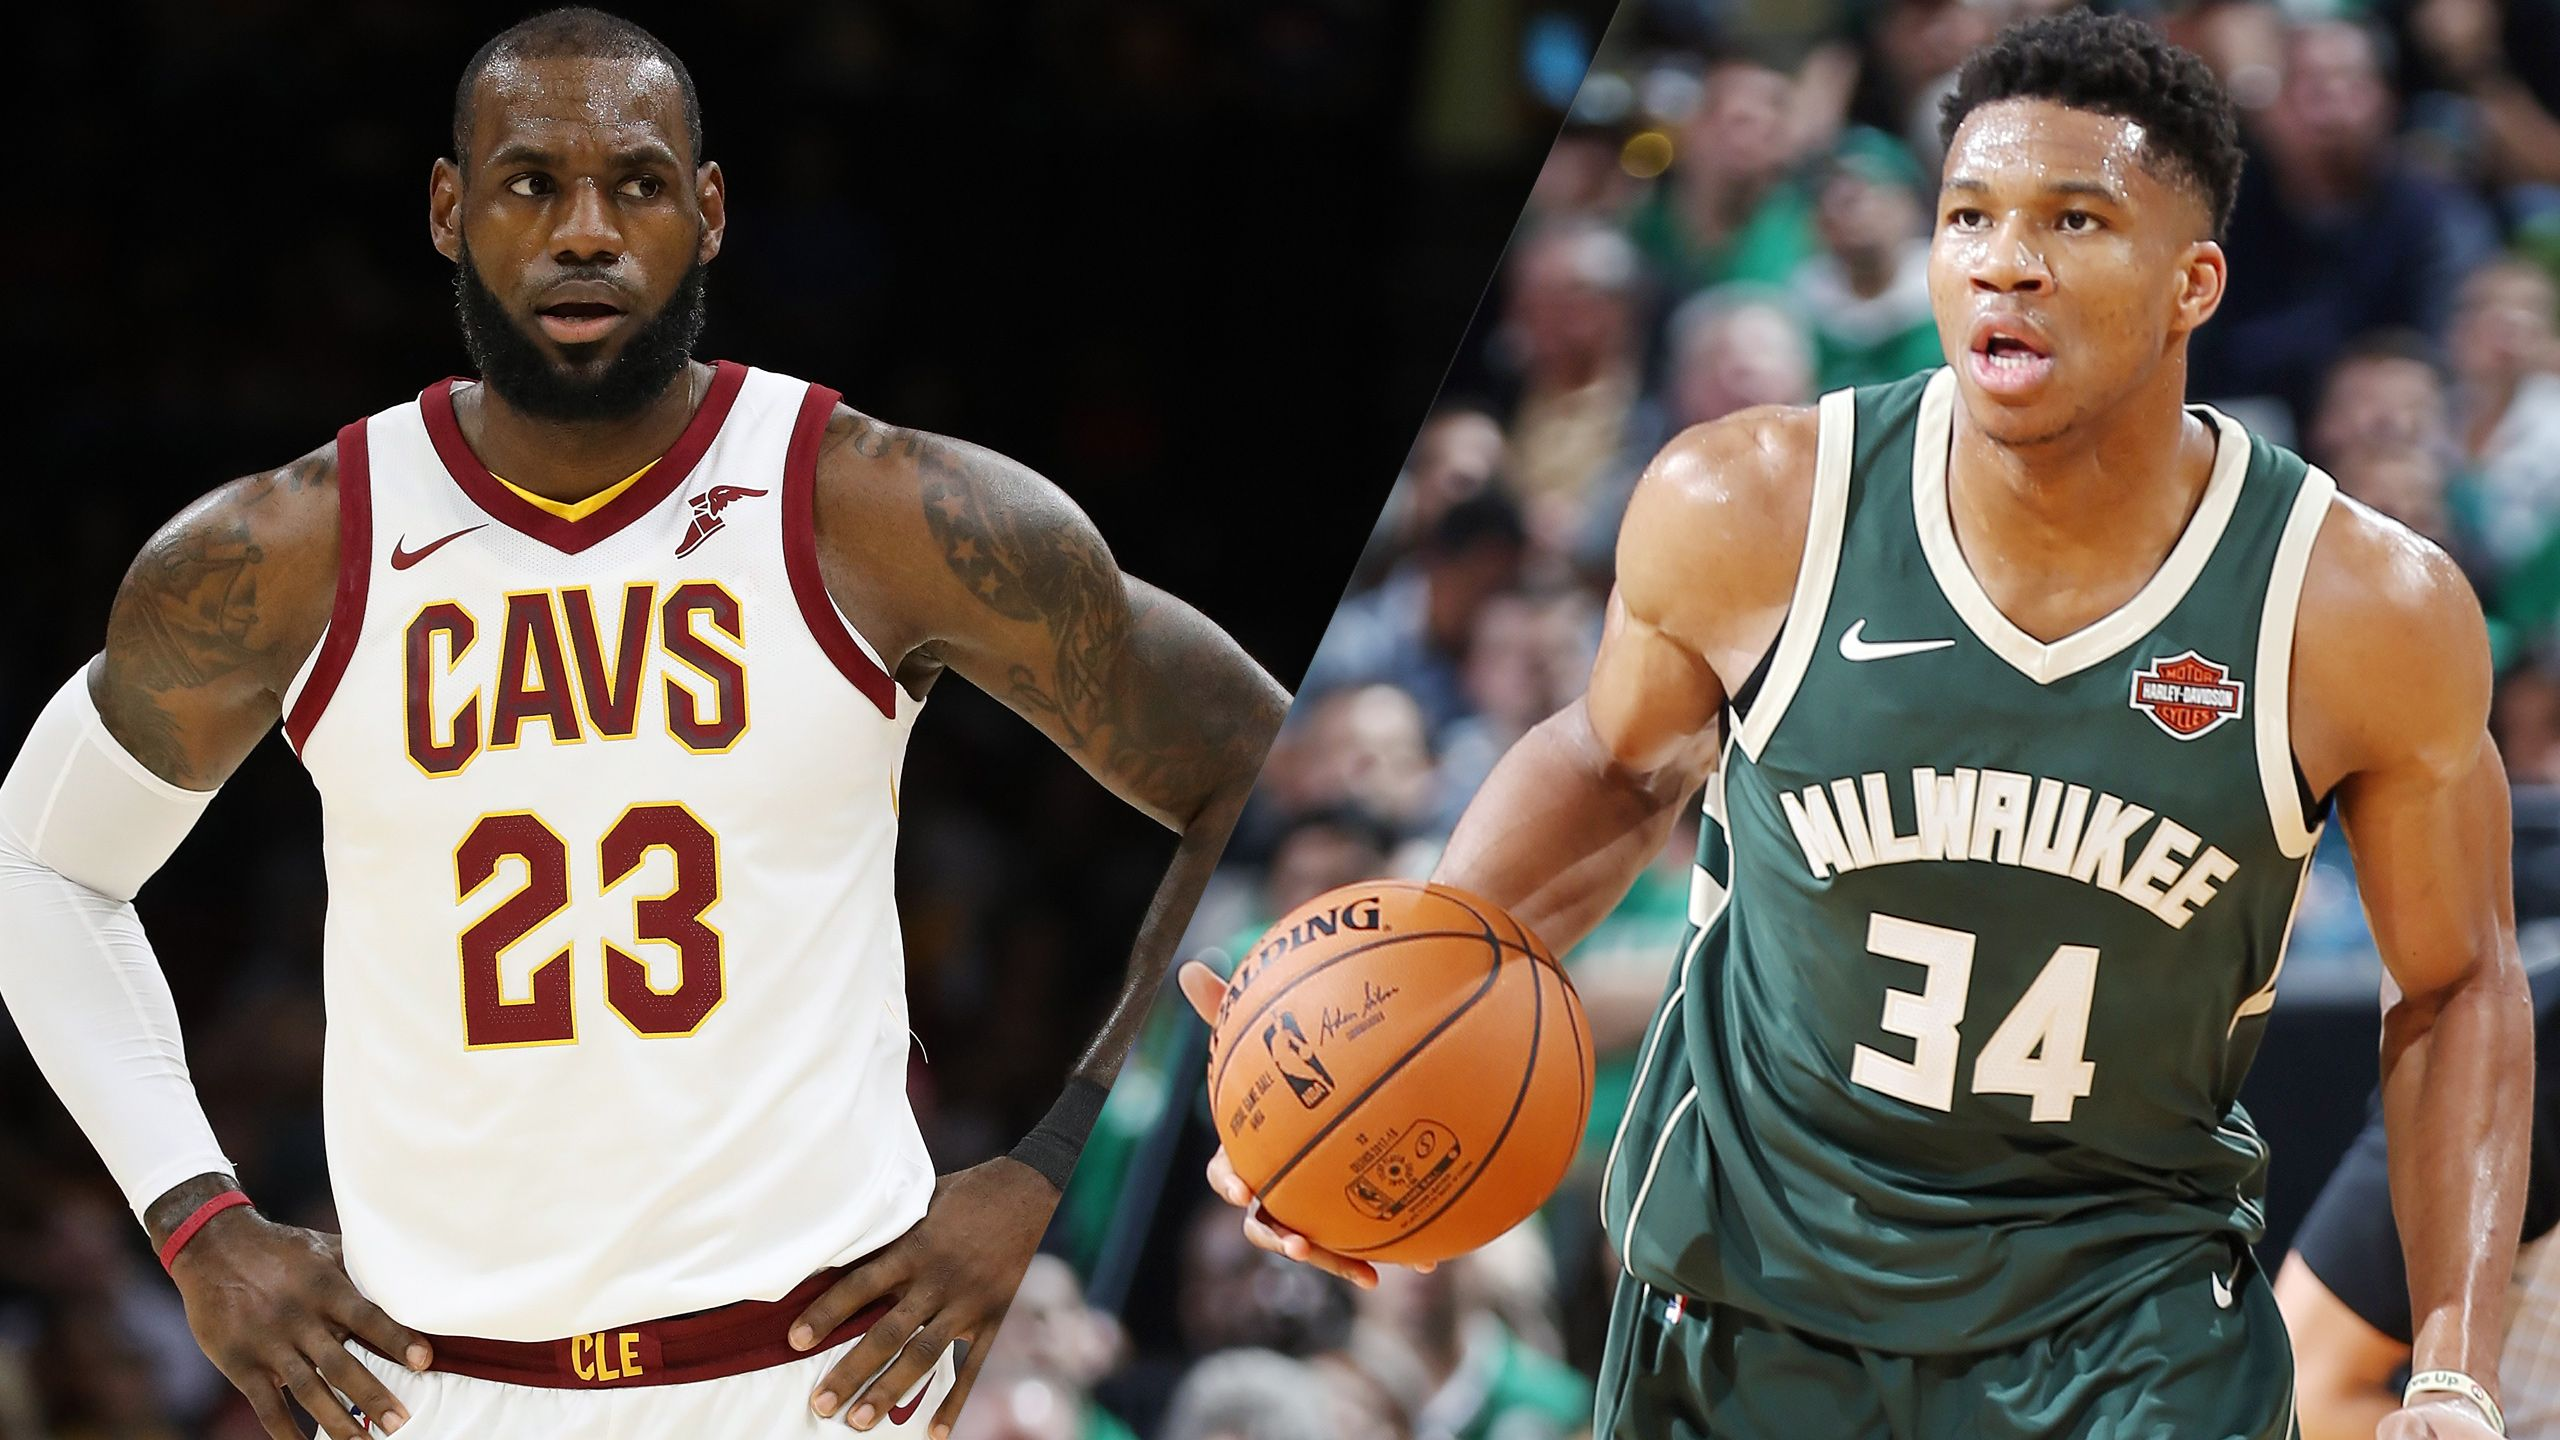 Cleveland Cavaliers vs. Milwaukee Bucks